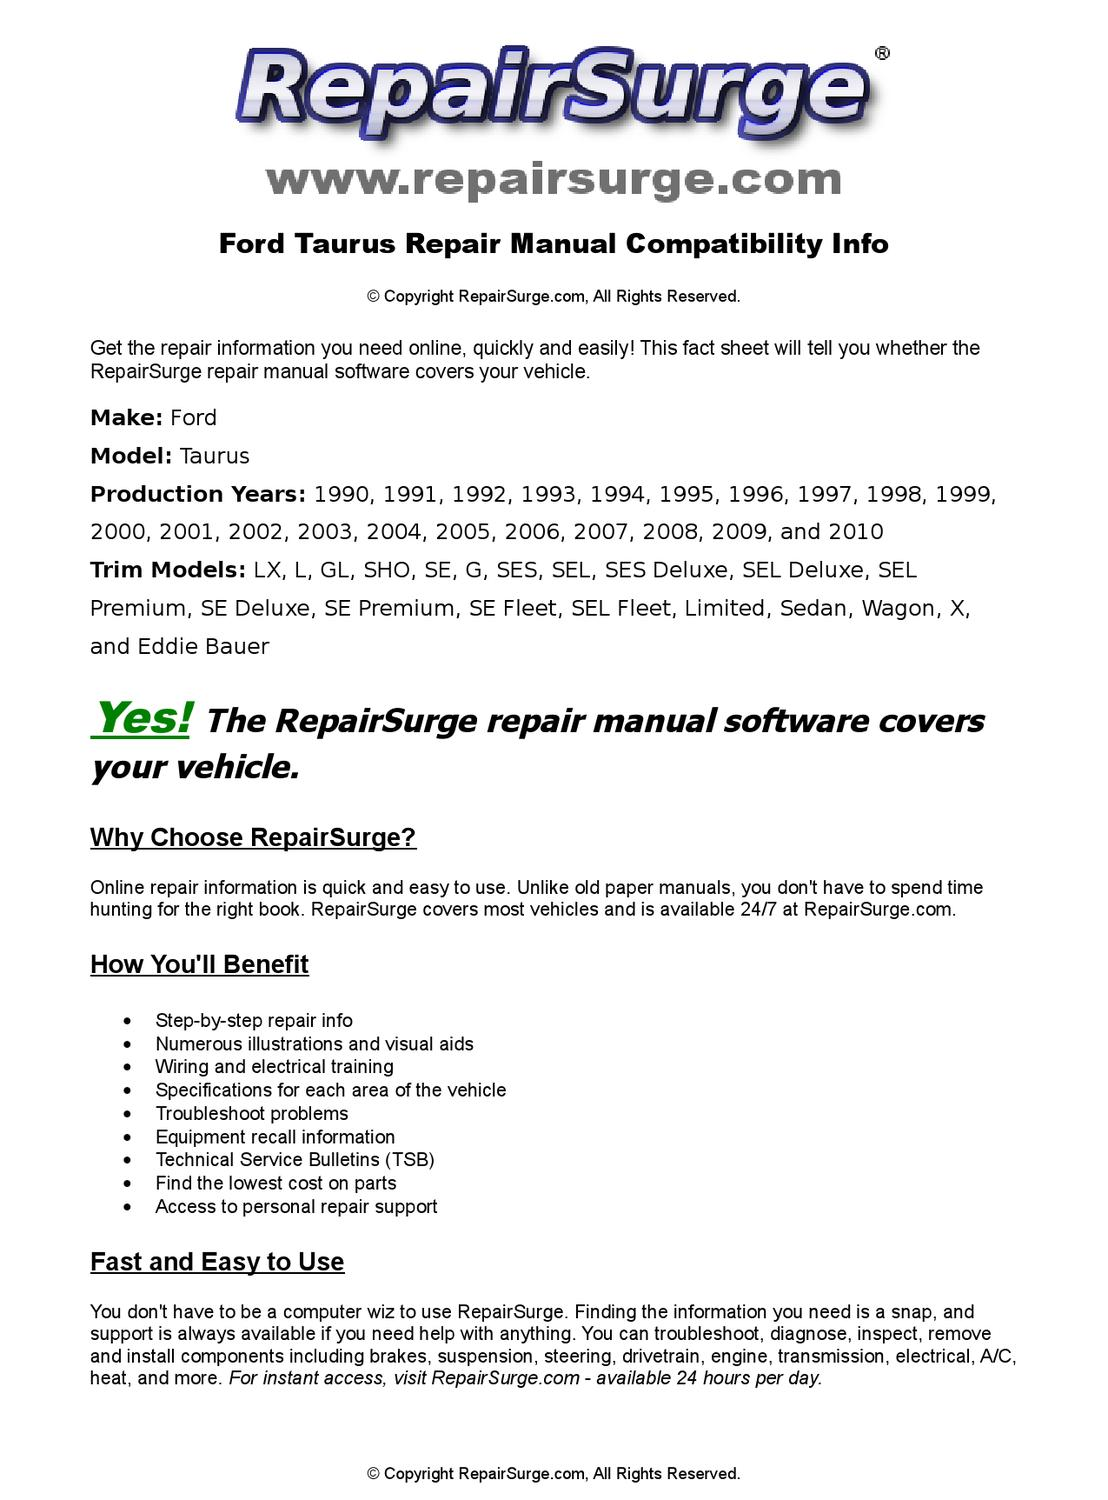 Ford Taurus Online Repair Manual For 1990, 1991, 1992, 1993, 1994, 1995,  1996, 1997, 1998, 1999, 200 by RepairSurge - issuu